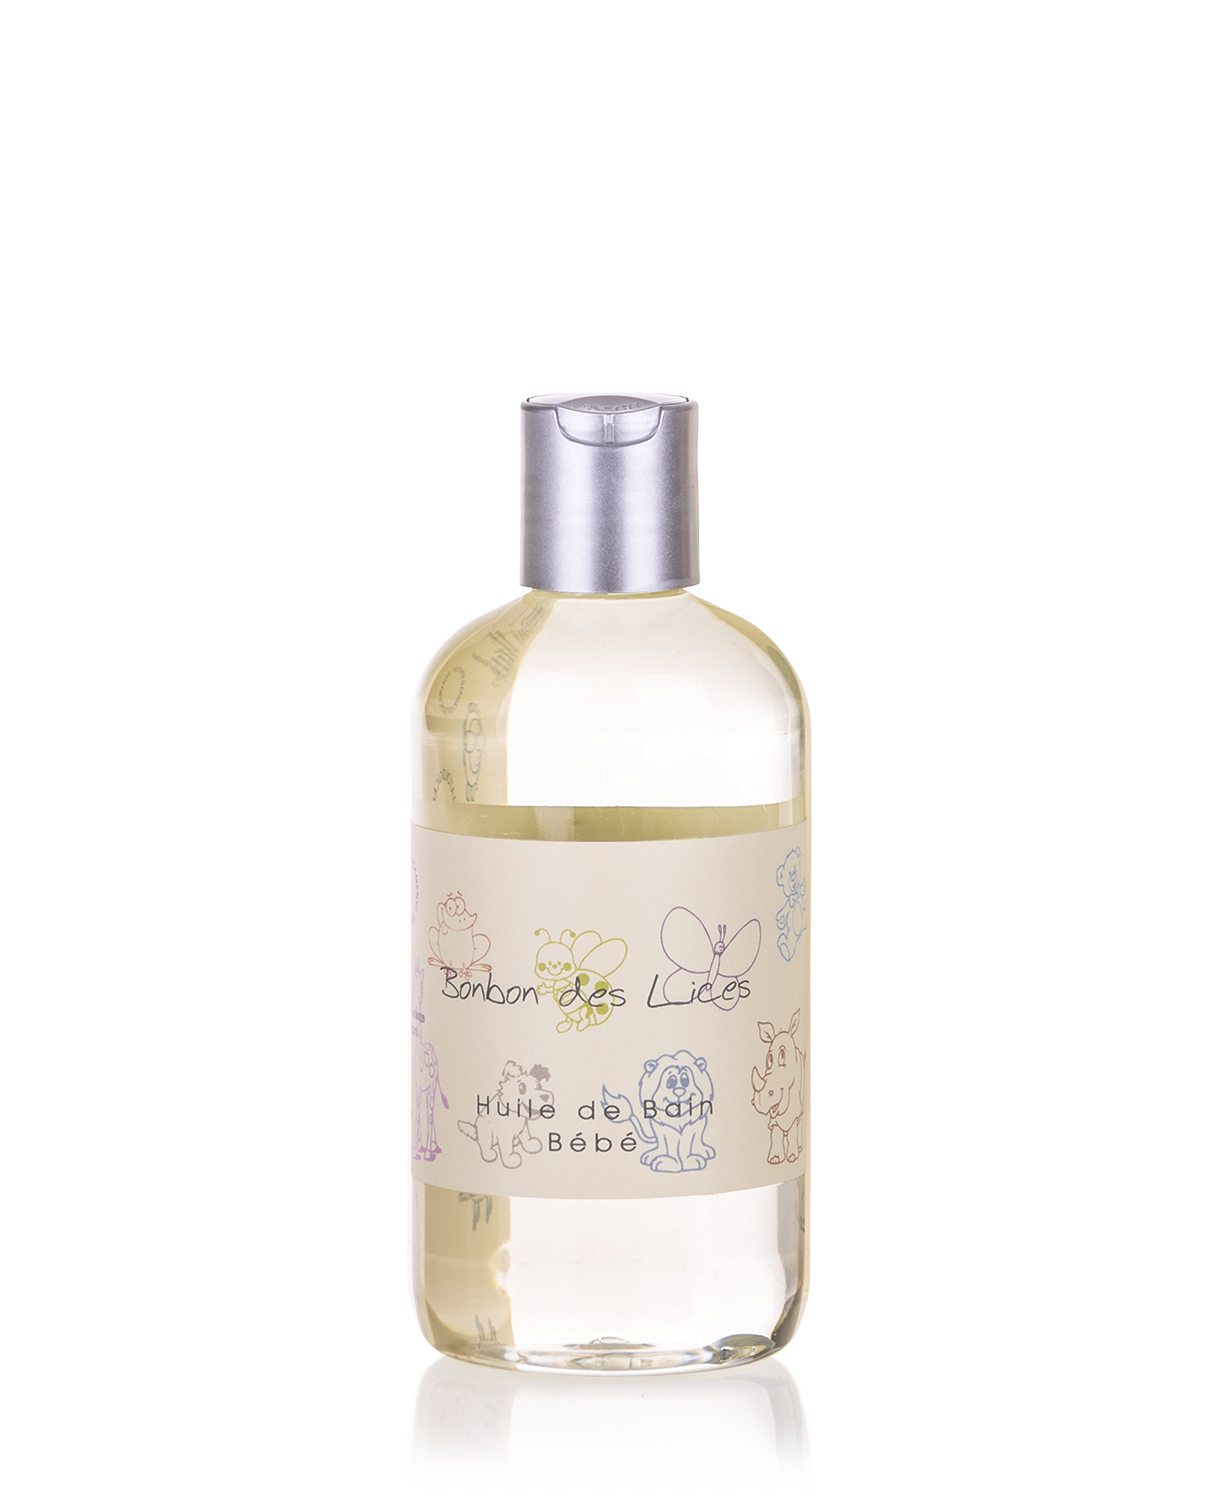 Bonbon des Lices bath oil Place des Lices